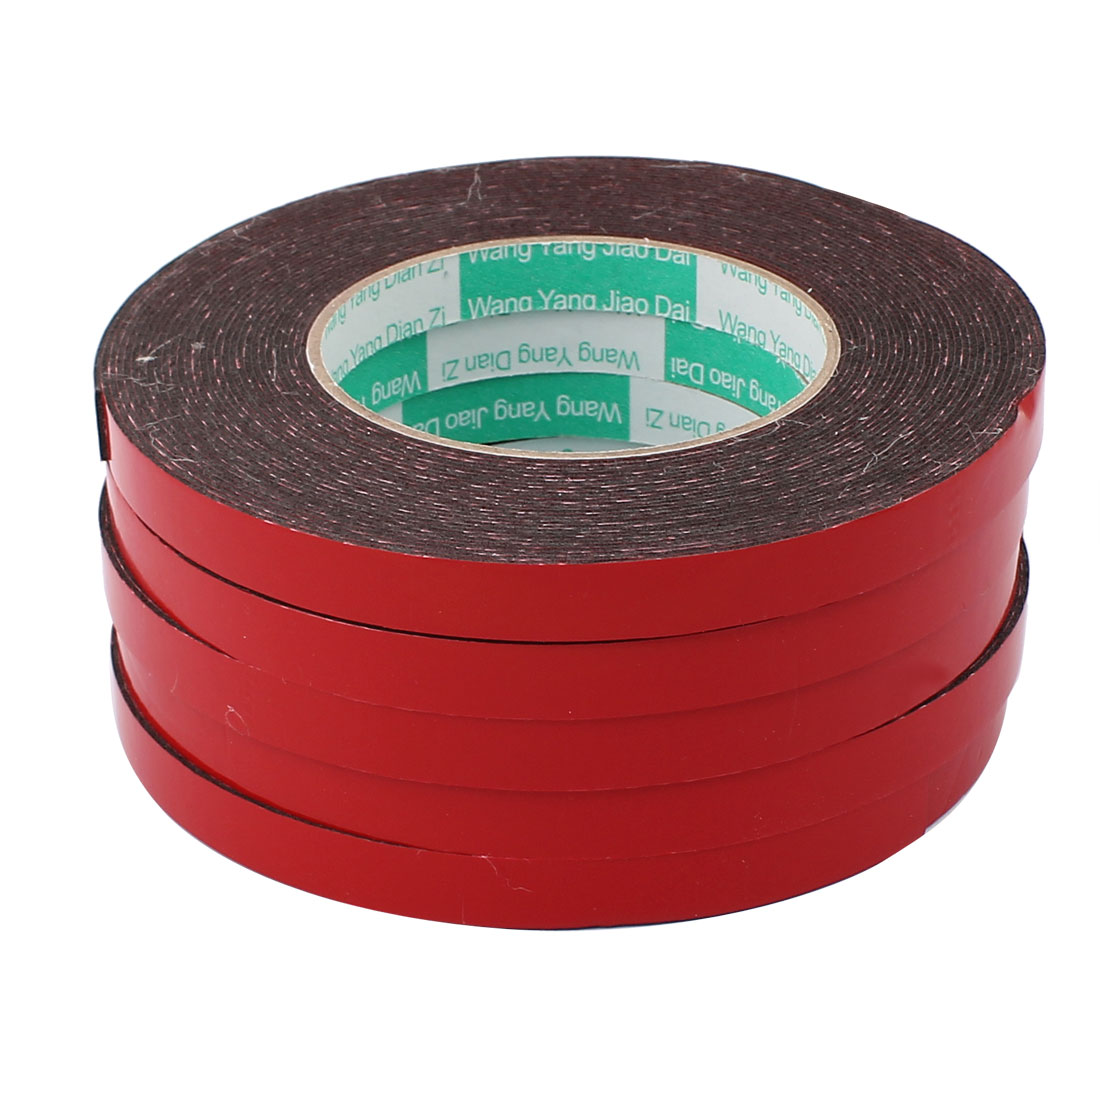 5pcs 12mm x 1mm Double Sided Self Adhesive Shockproof Sponge Foam Tape 10M Long